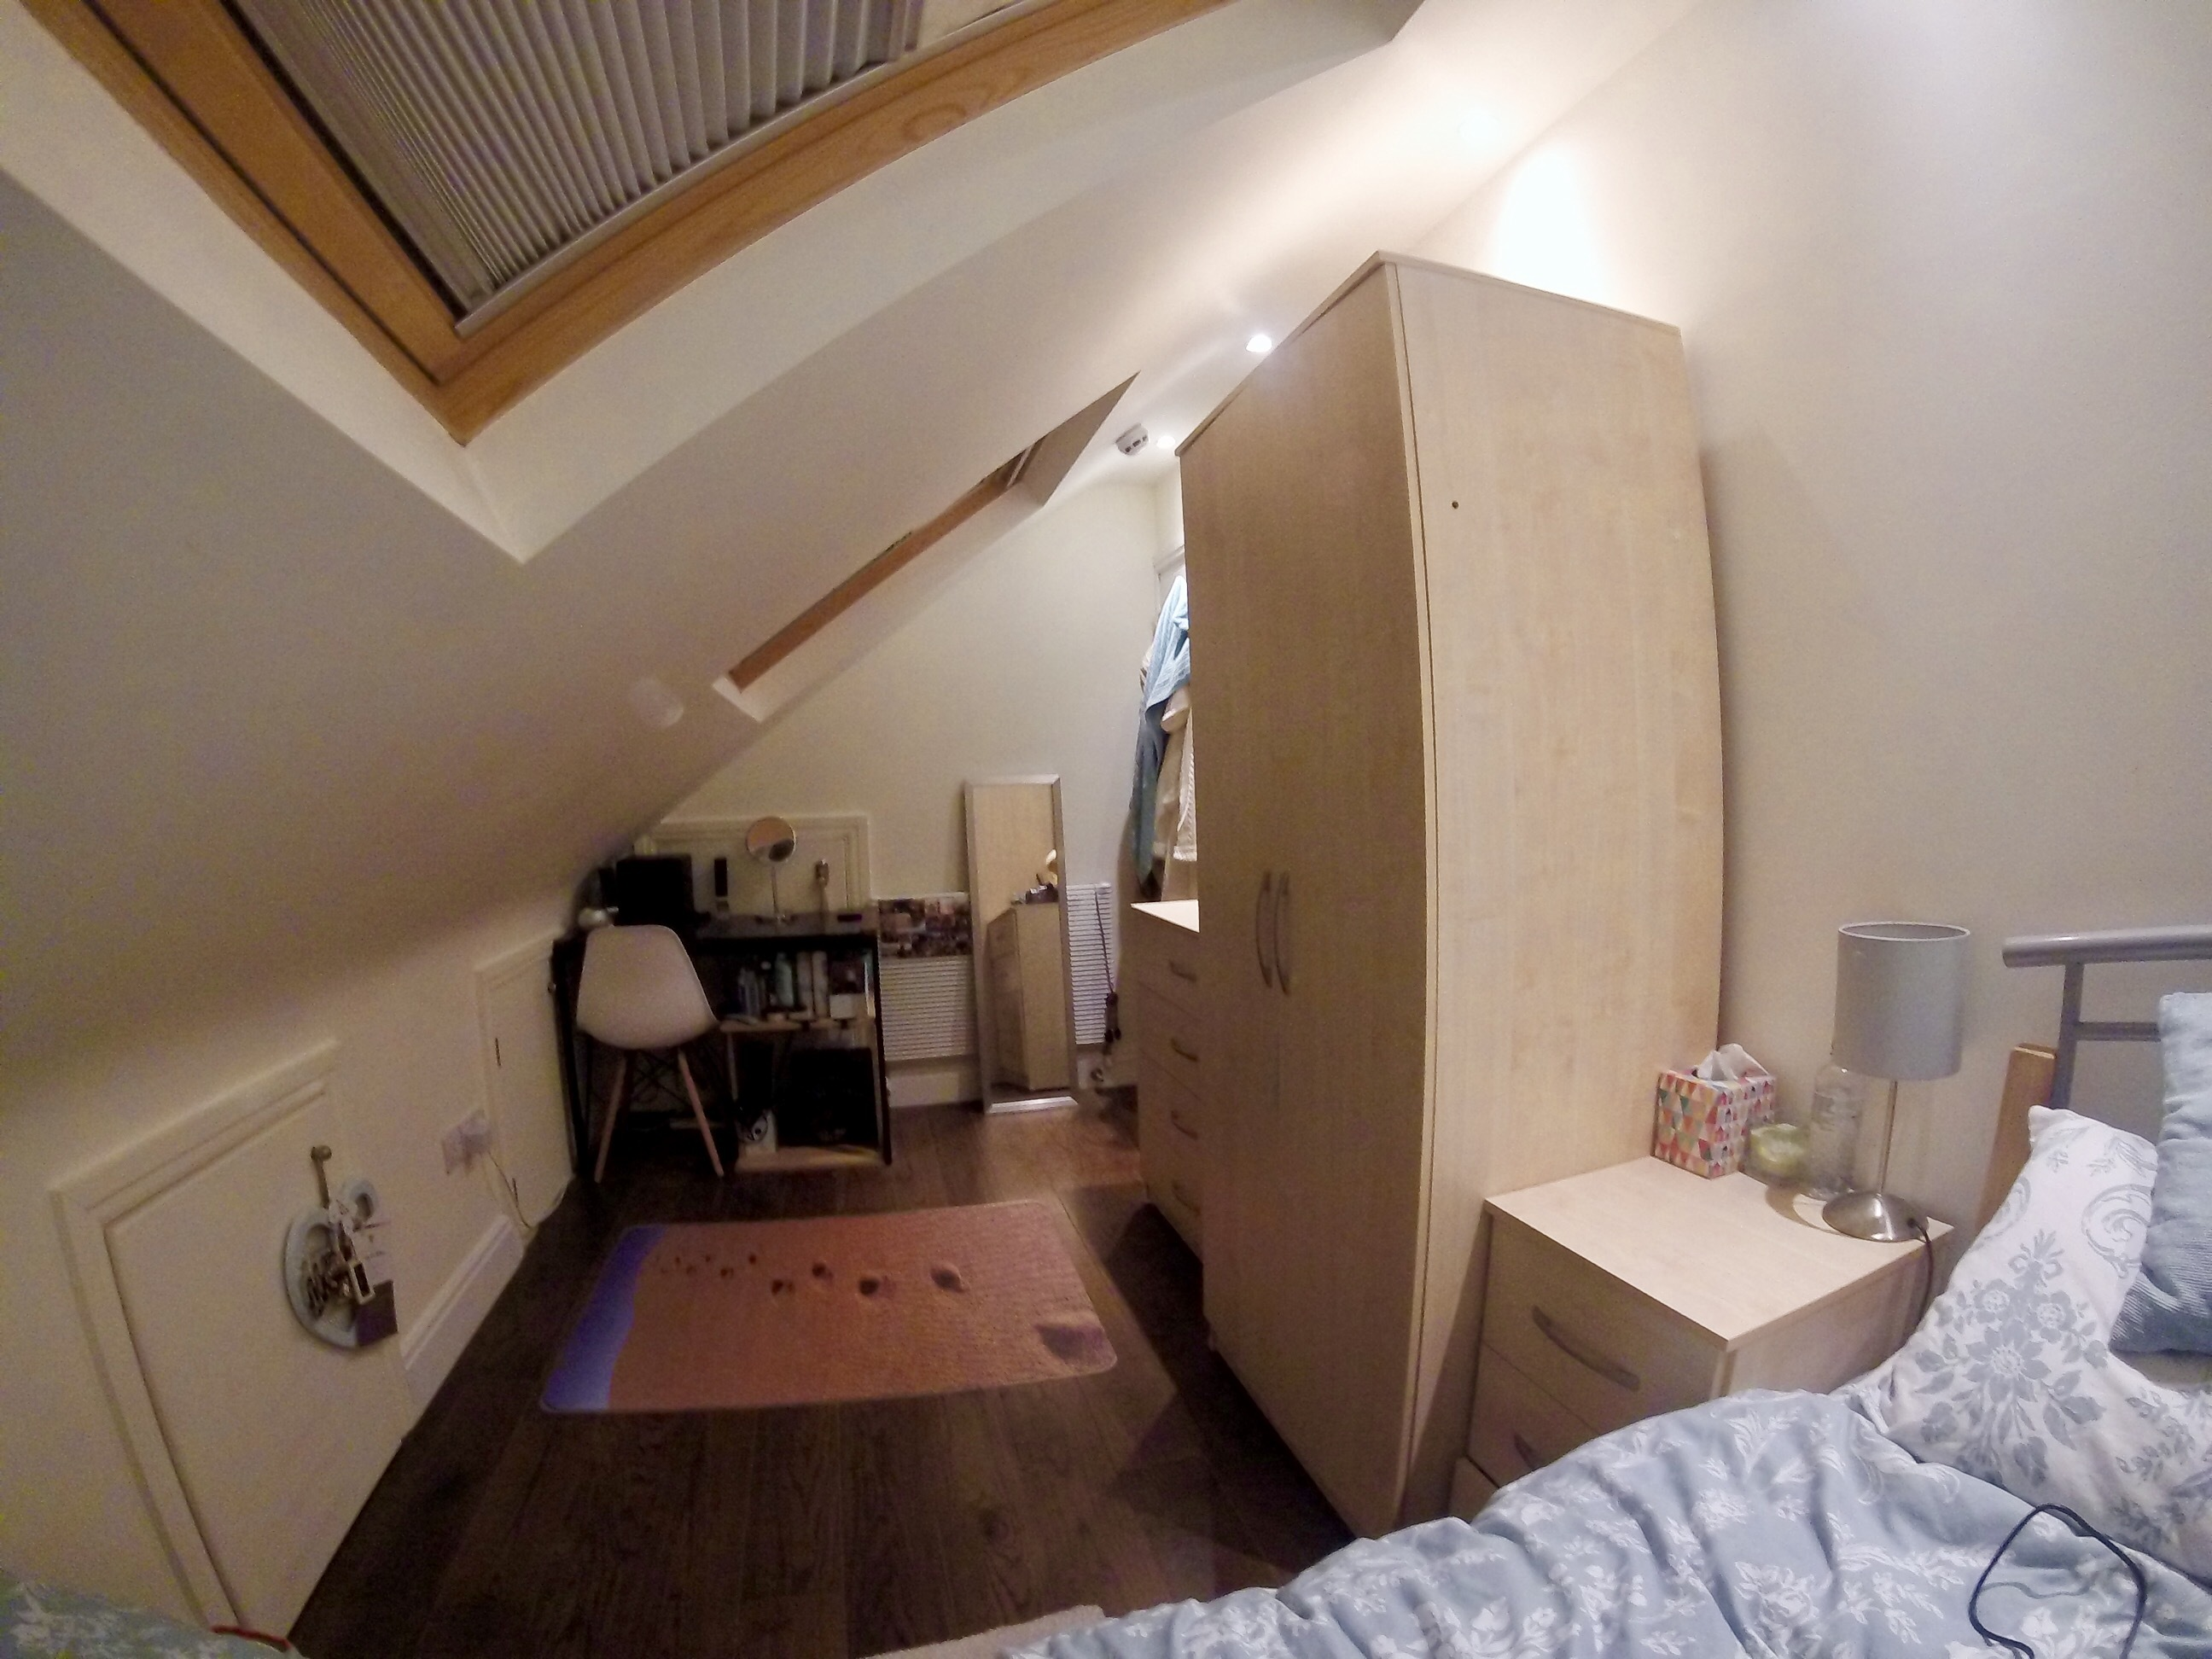 Cheap room in new house, bills inc